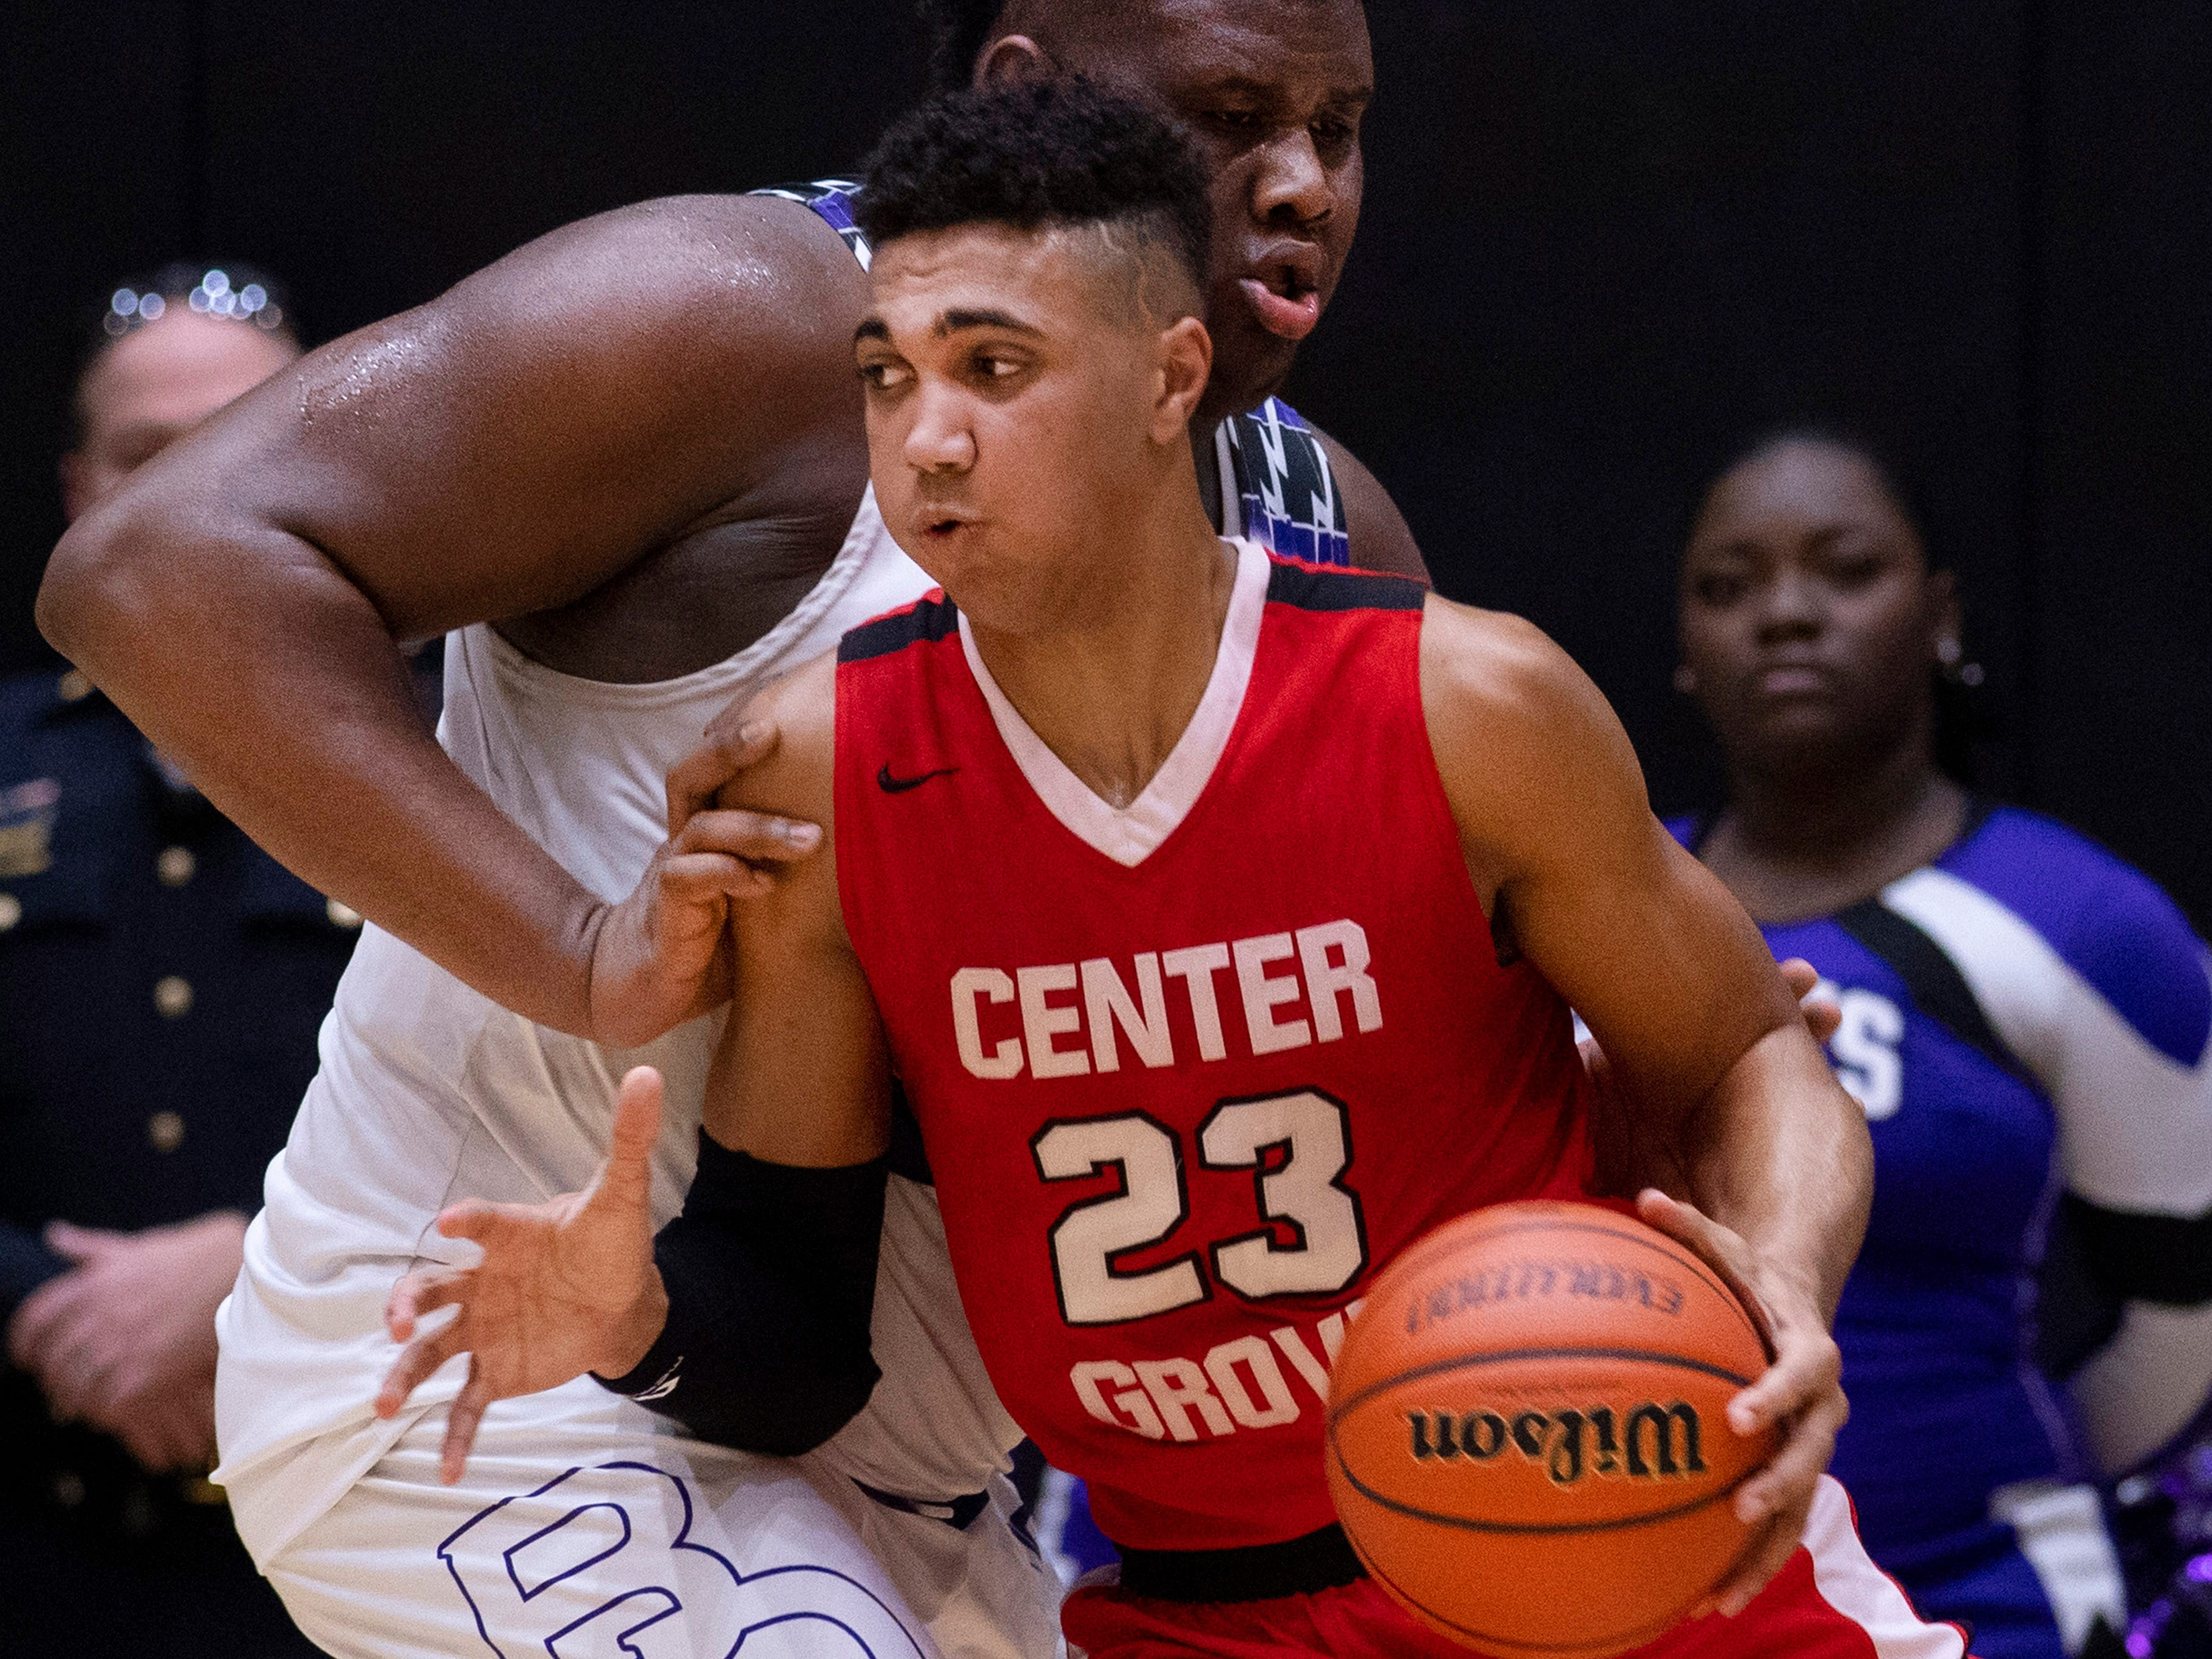 Center Grove's Trayce Jackson-Davis (23) attempts to move through the paint against Ben Davis's Dawand Jones (54) during the 4A Boys Indiana Semi-State Basketball Tournament at the Hatchet House in Washington, Ind., Saturday afternoon.